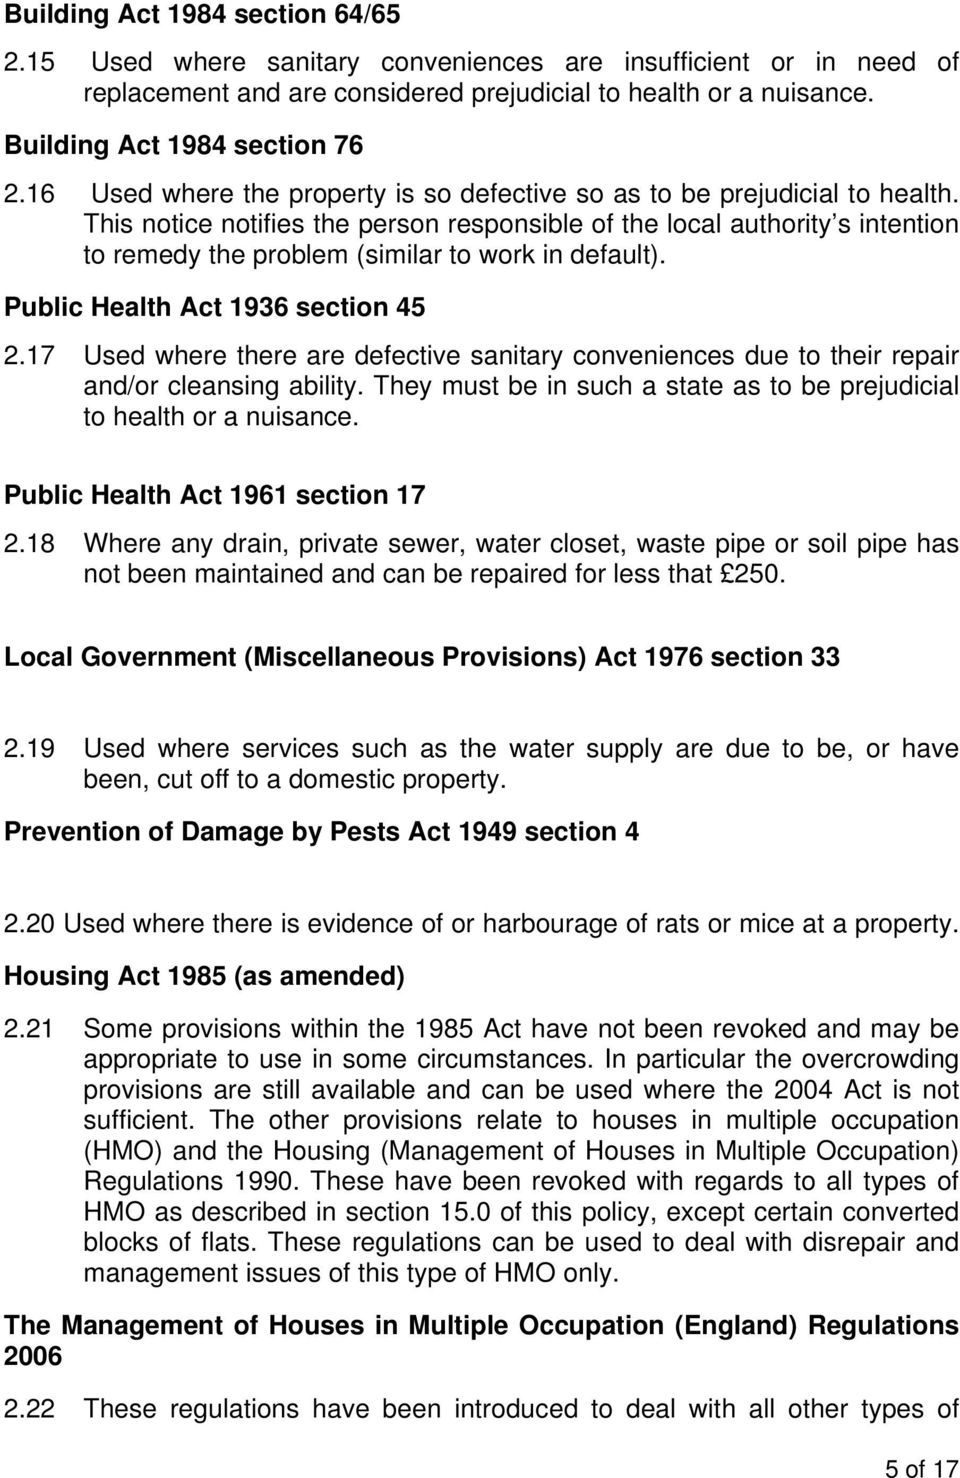 This notice notifies the person responsible of the local authority s intention to remedy the problem (similar to work in default). Public Health Act 1936 section 45 2.